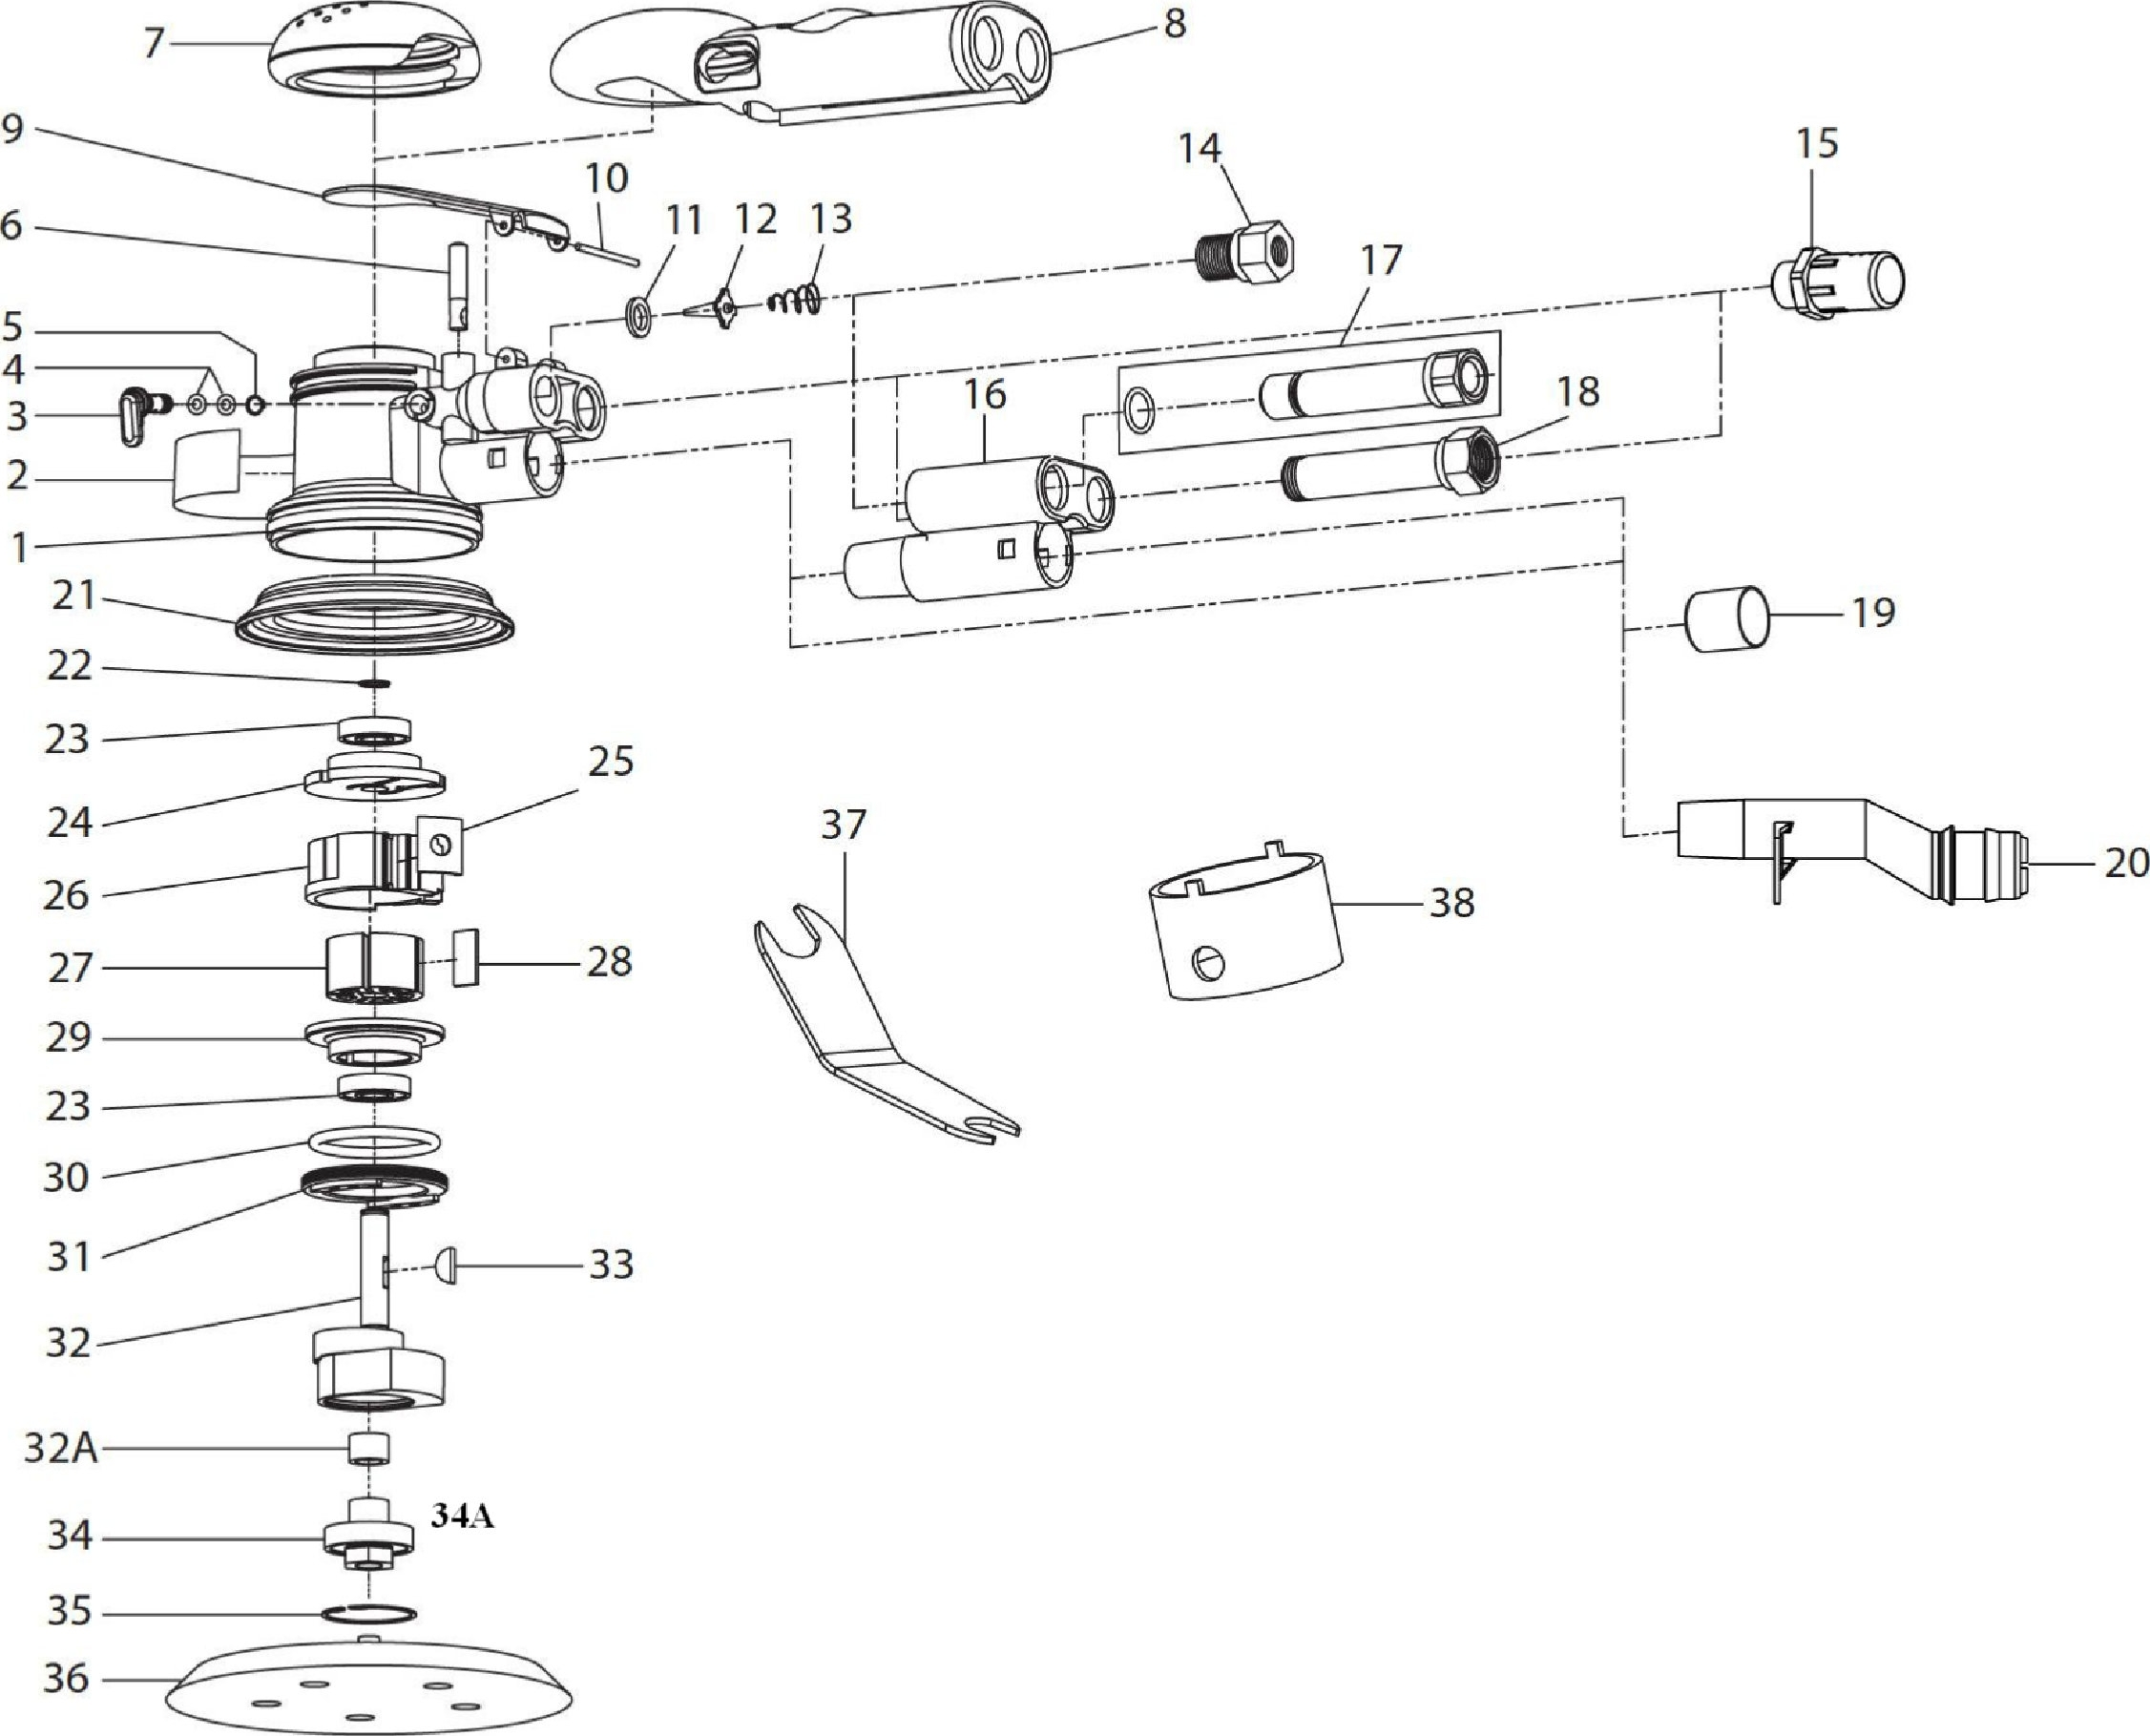 Ingersoll Rand Air Tool Parts Diagrams